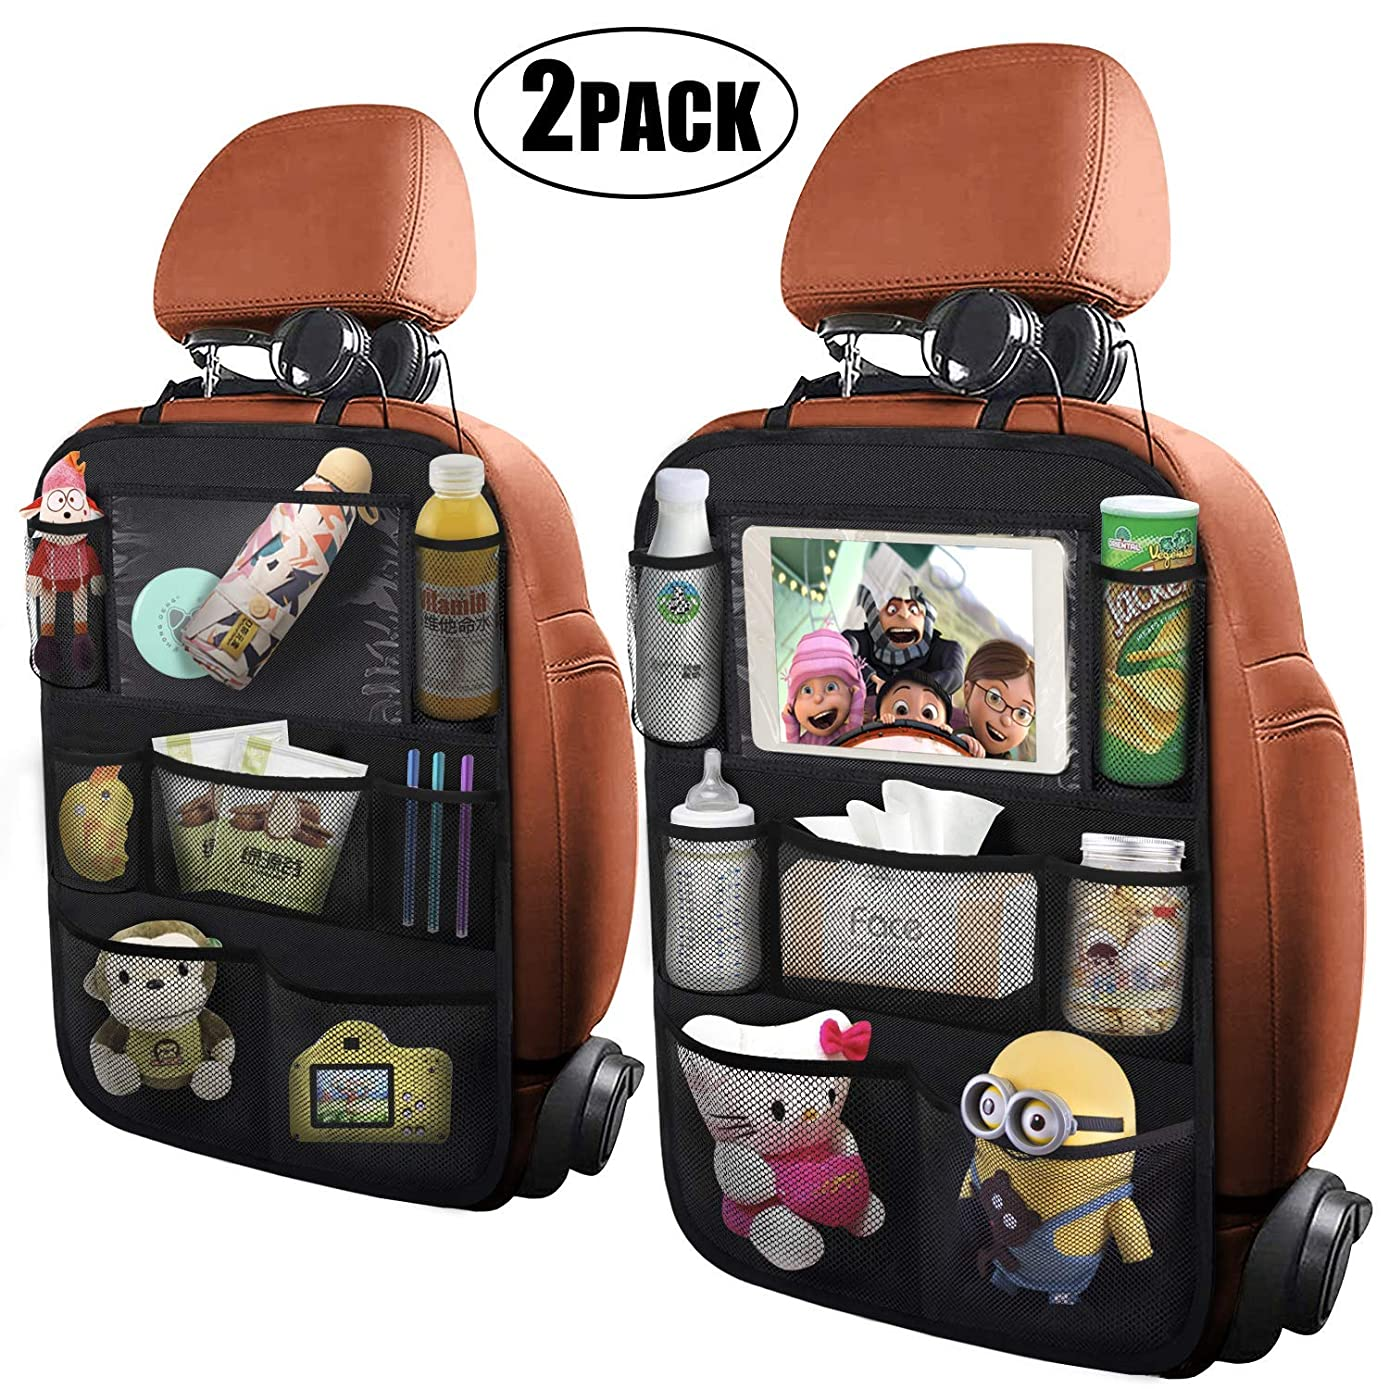 Car Backseat Organizer with Touch Screen Tablet Holder 7 Storage Pockets Kick Mats Seat Back Protectors for Kids and Toddlers Premium Vehicle Travel Accessories (2 Pack)